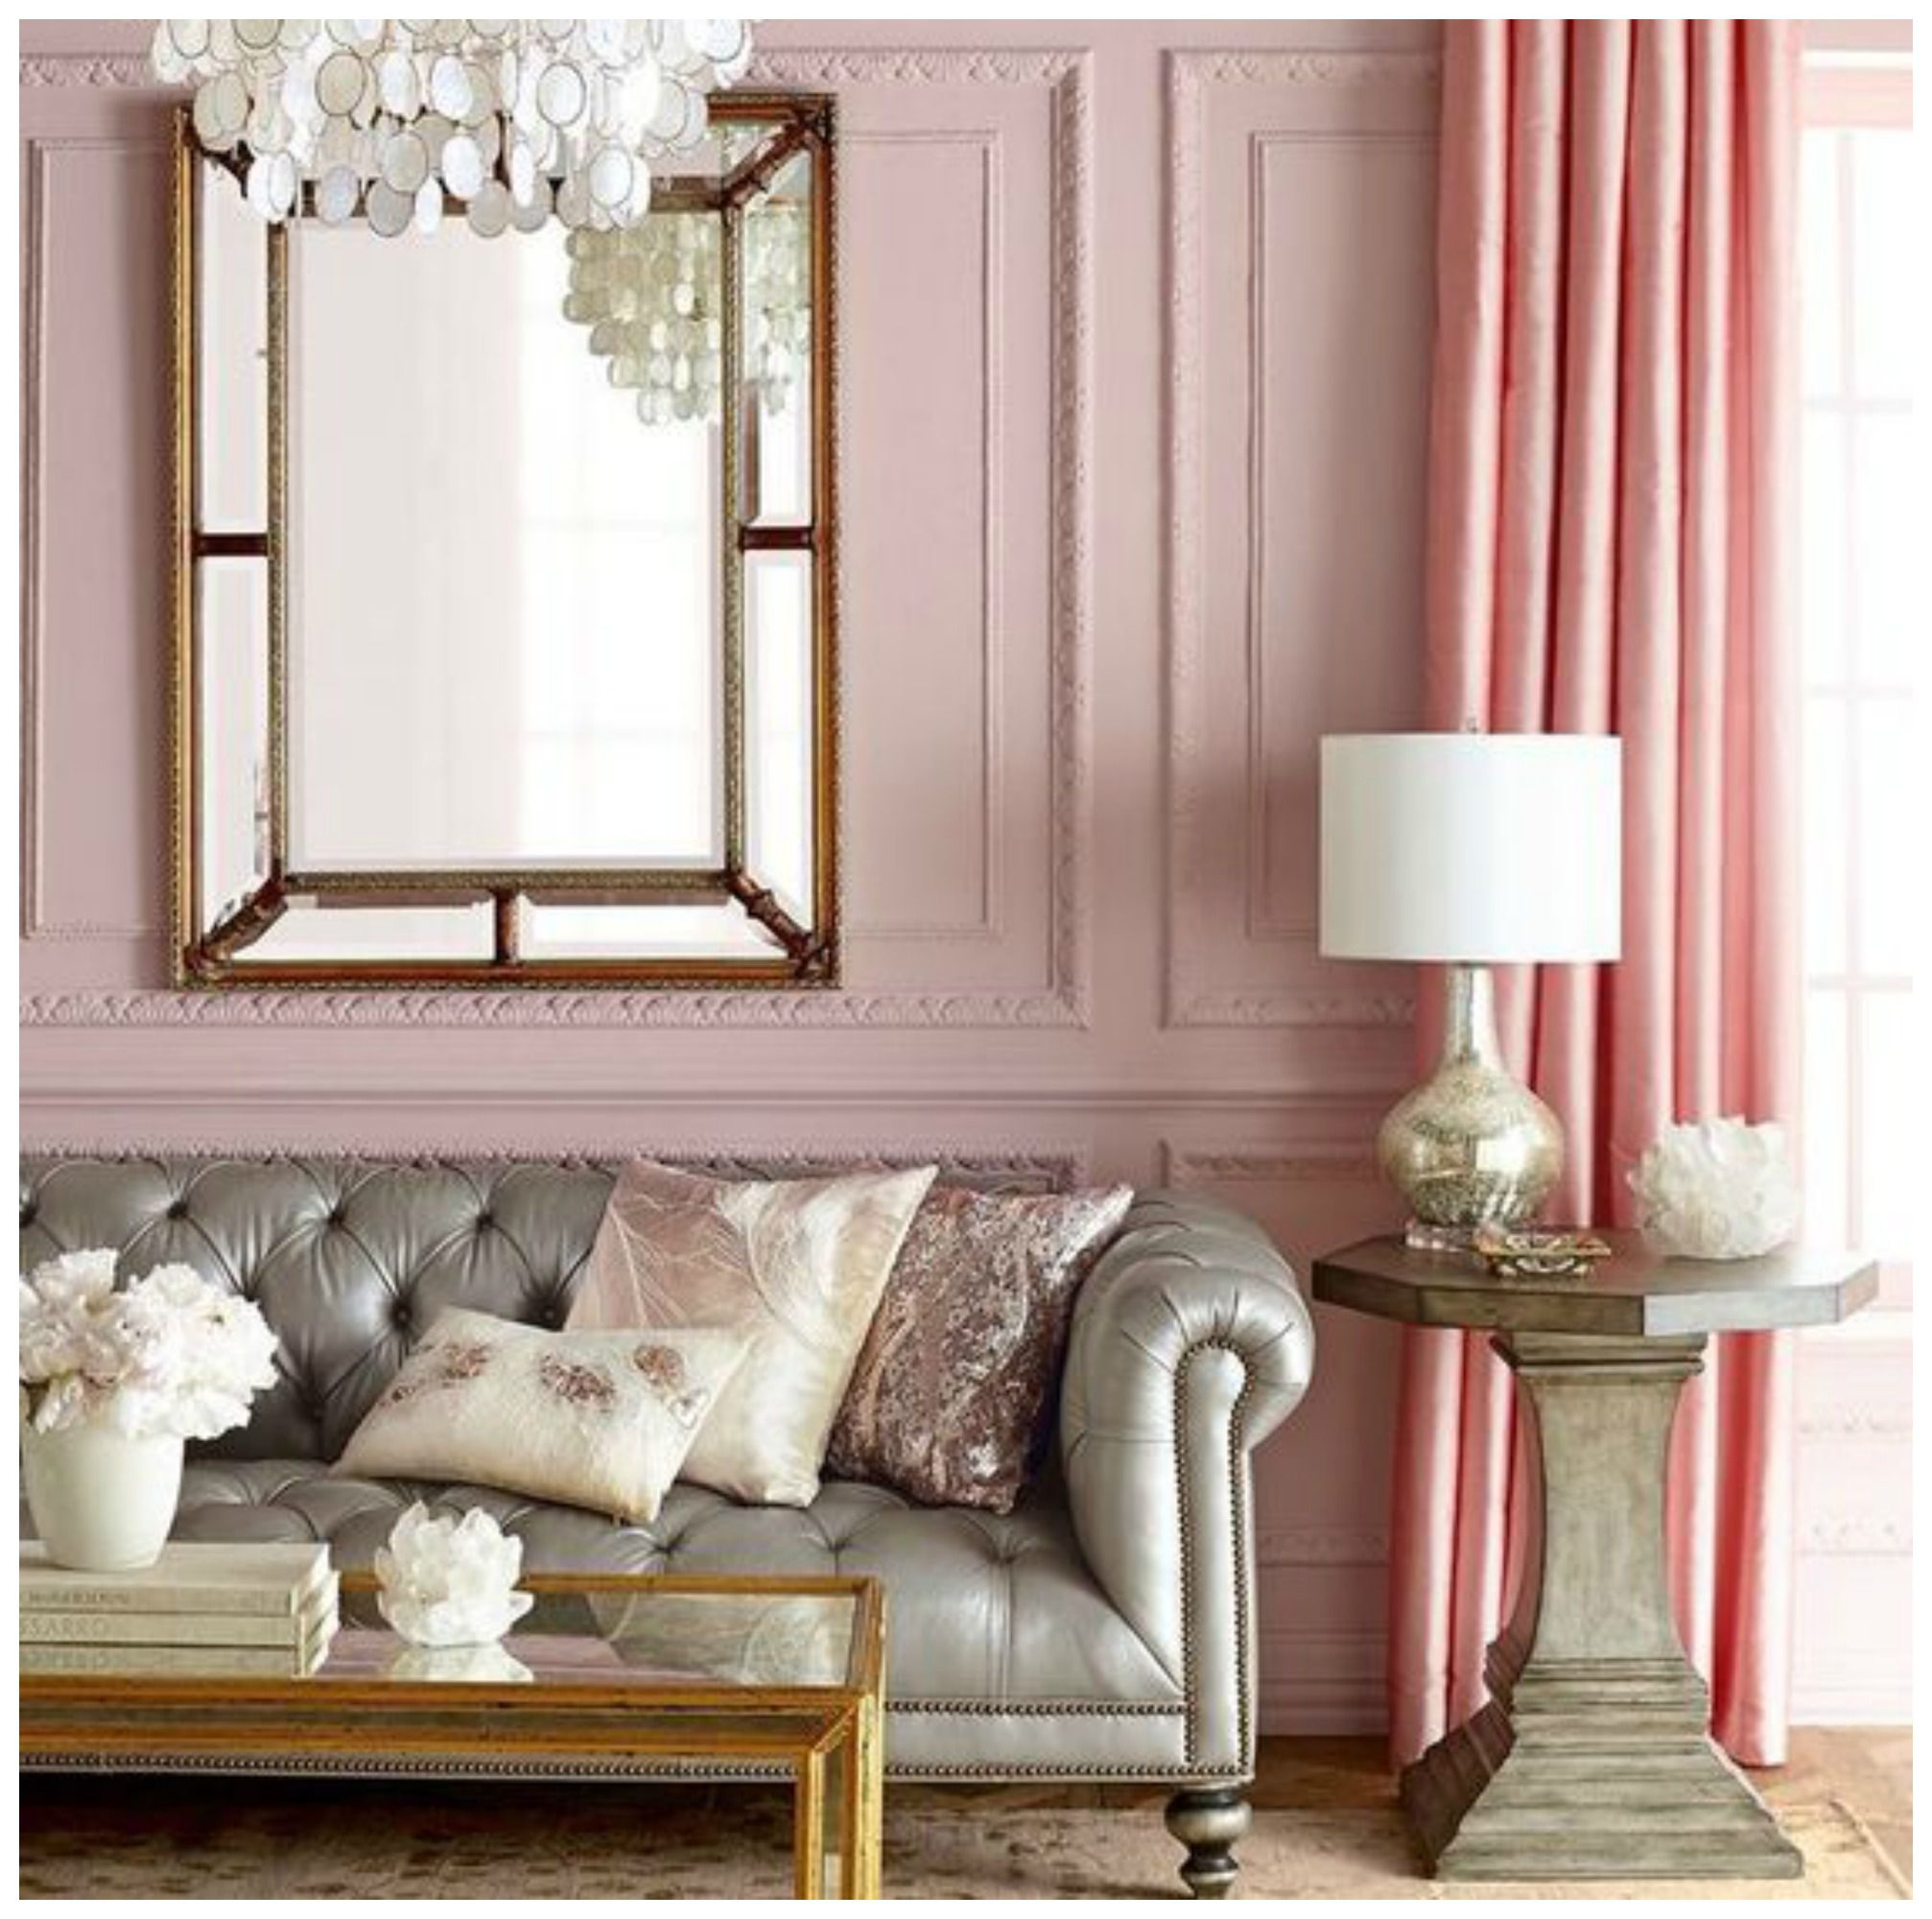 How To Make A Room Look More Feminine